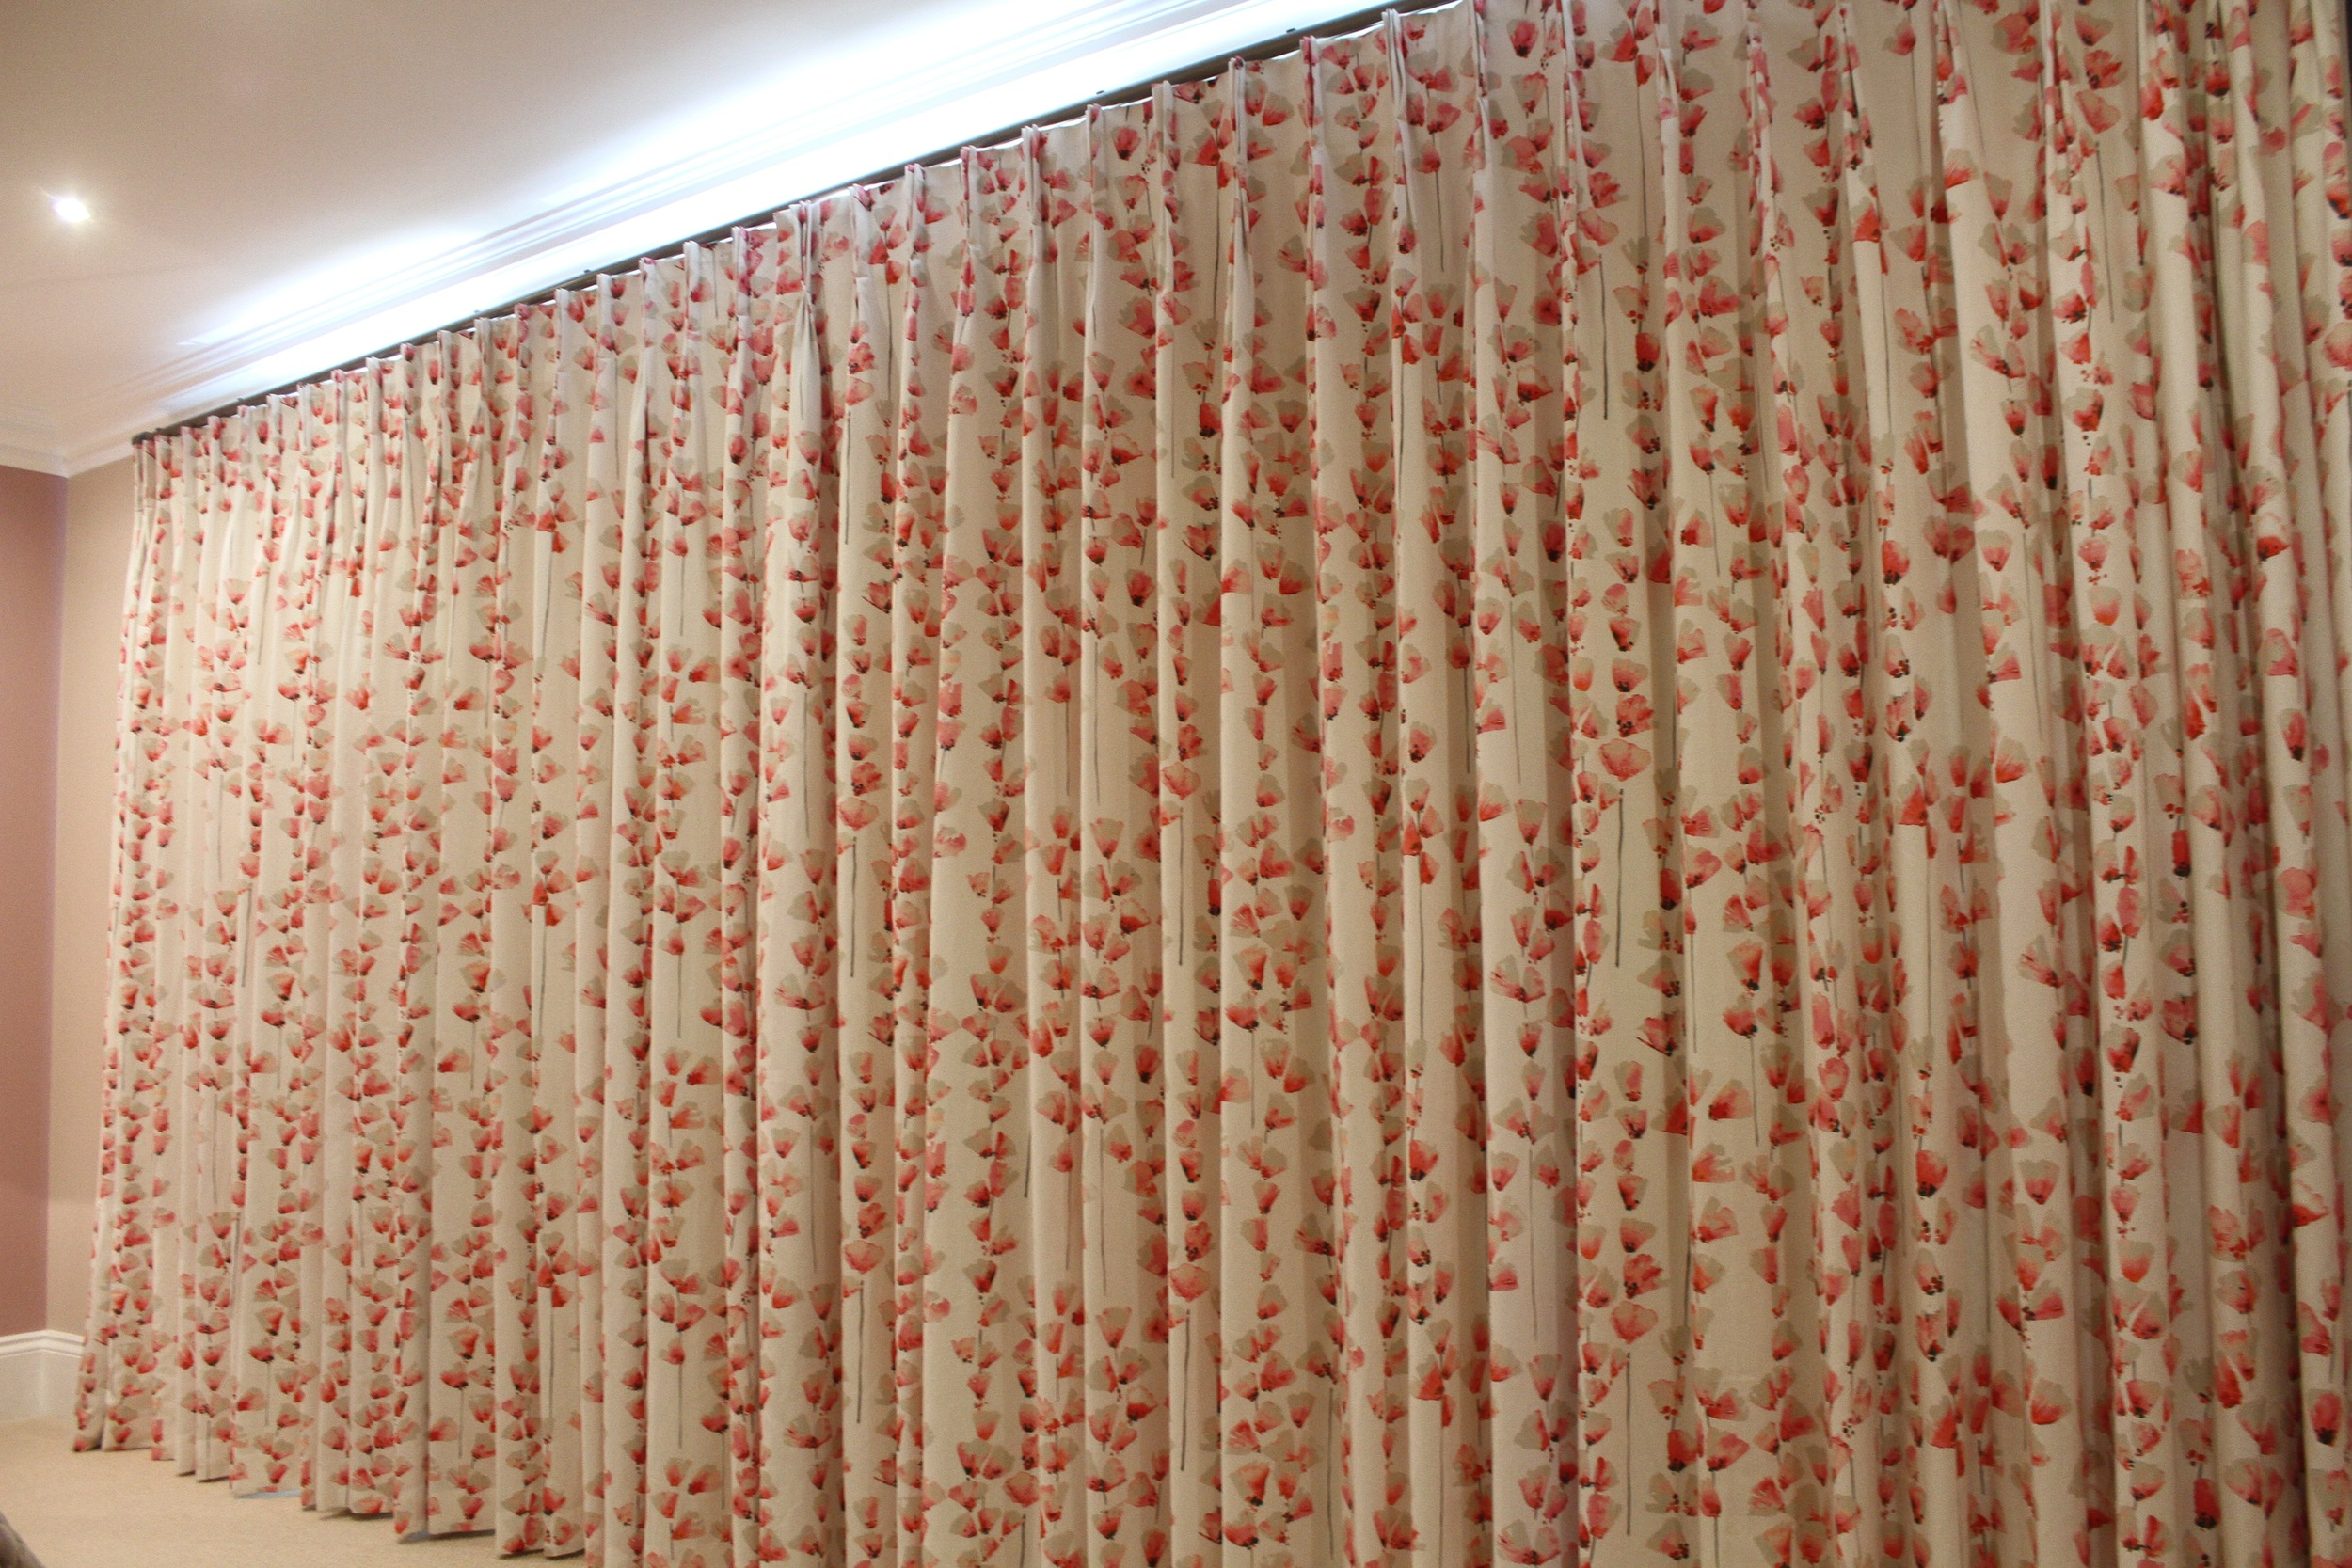 Eyebrook 1st guest bed curtains closed.jpg